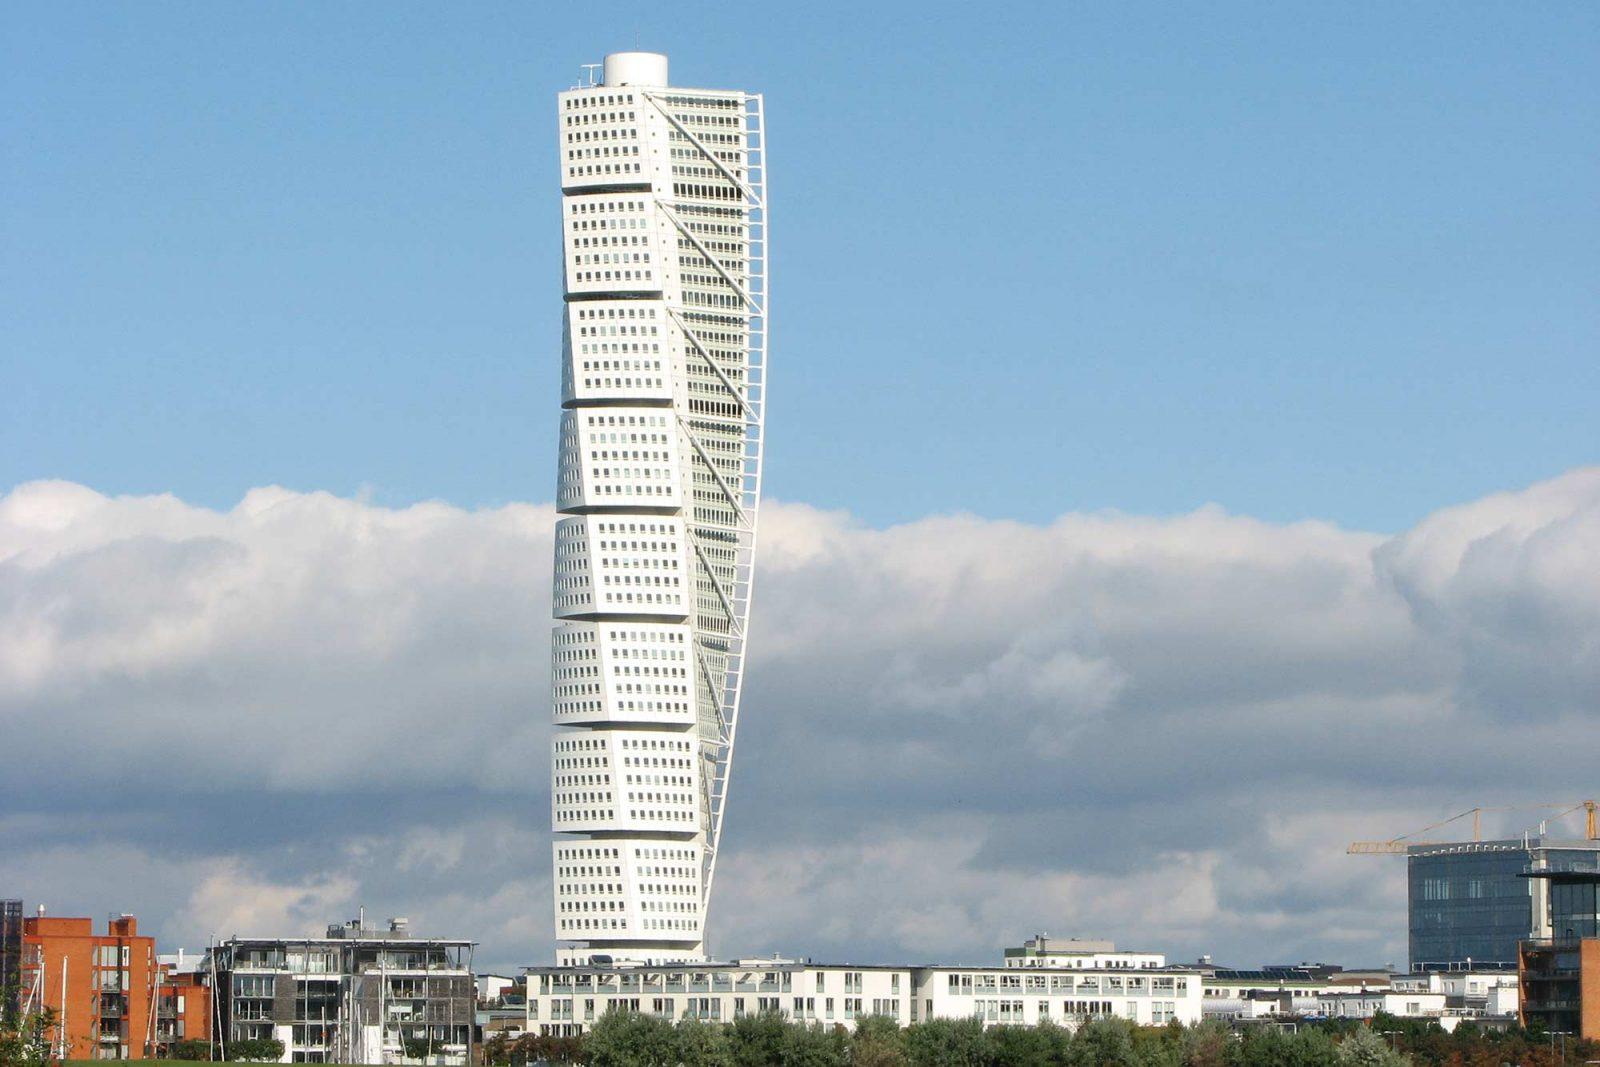 faq sweden  turning torso.6fvpky7ookoo - faq-sweden__turning-torso.6fvpky7ookoo